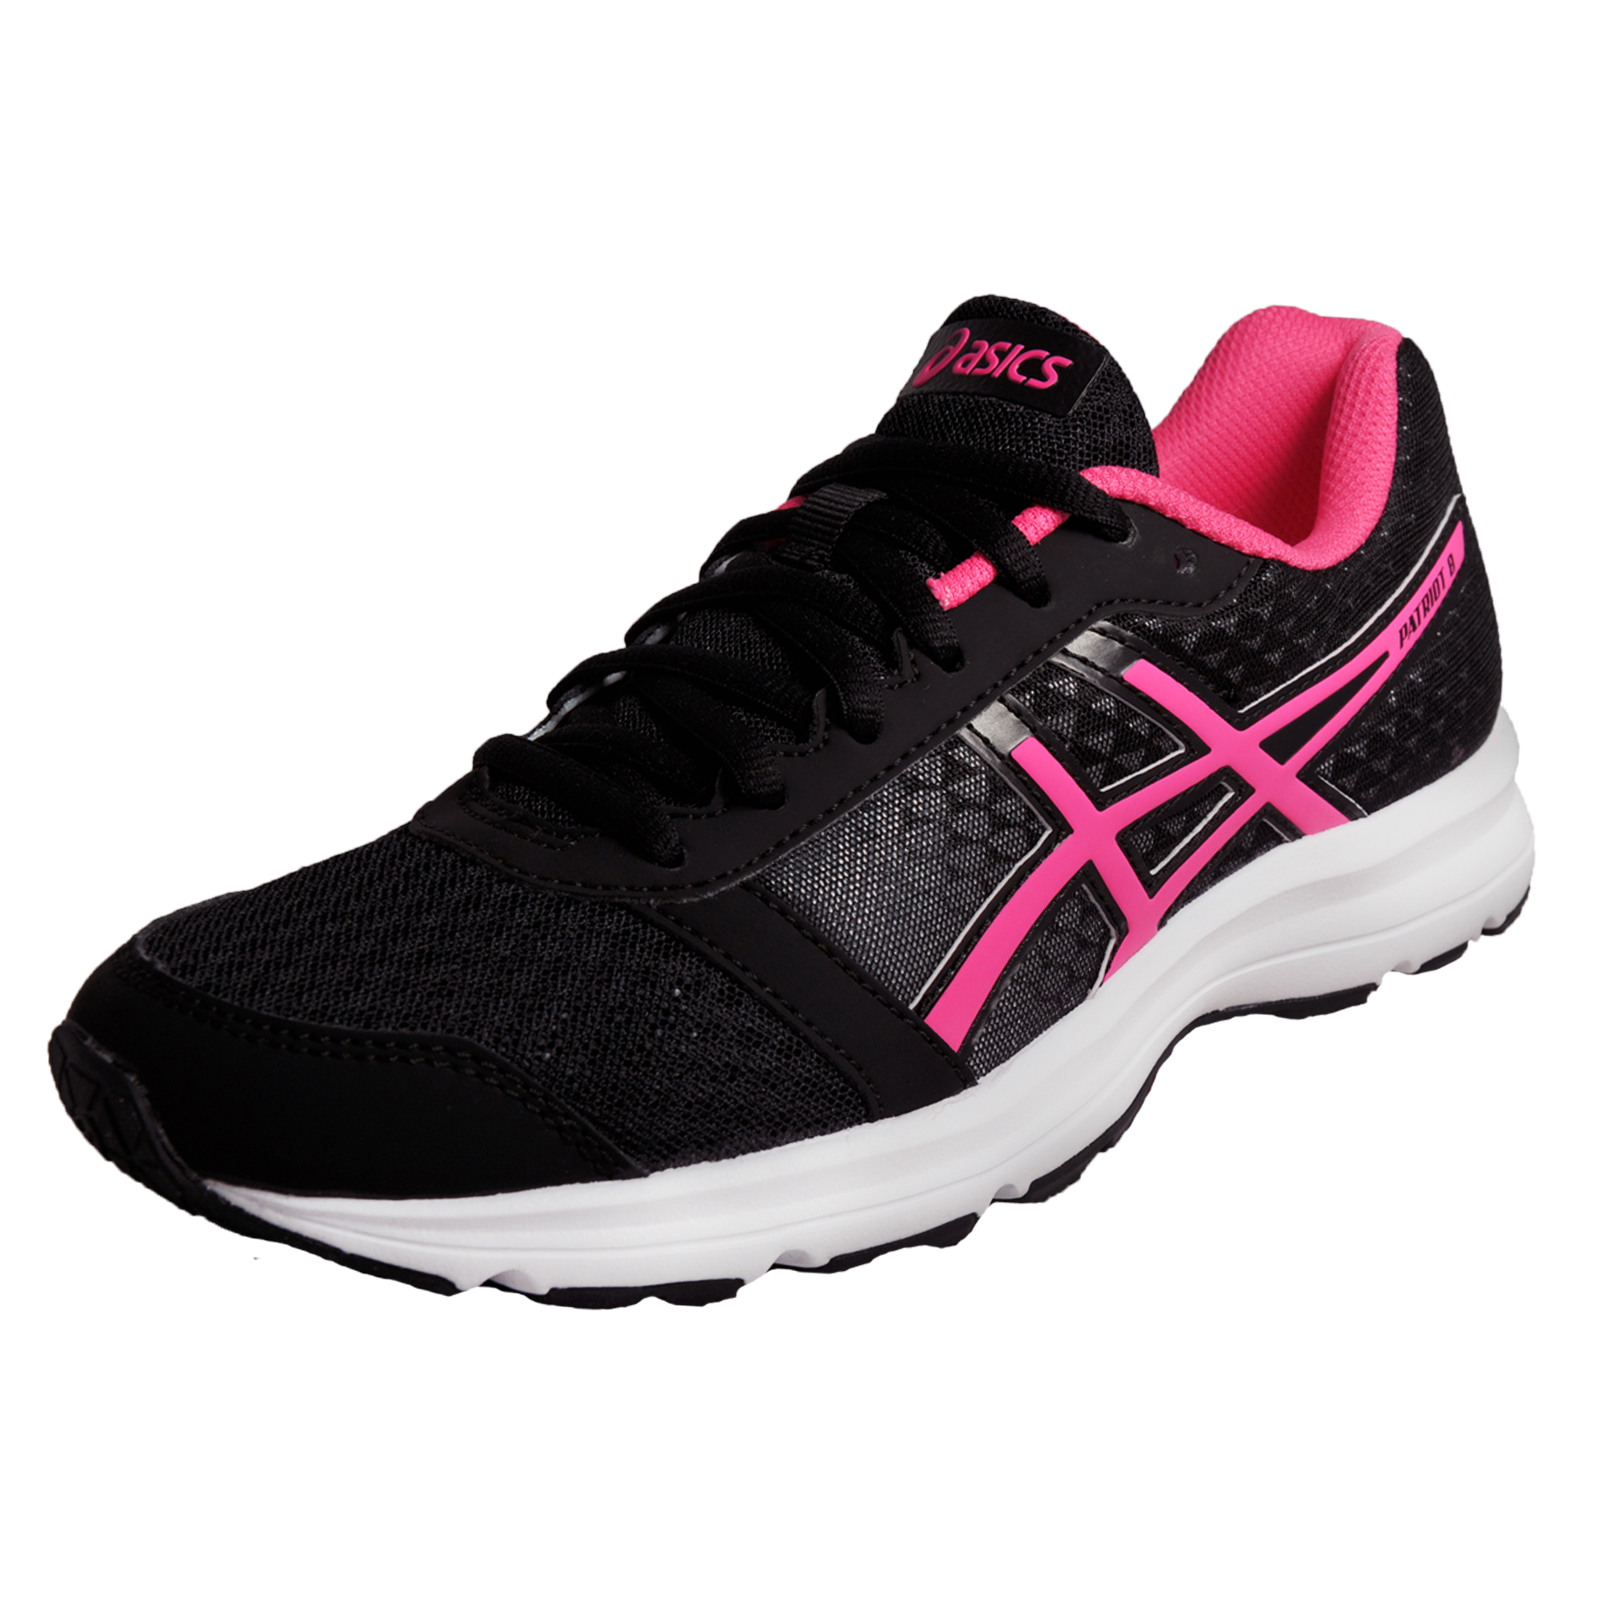 Asics Patriot 8 Womens Running Shoes Fitness Gym Trainers